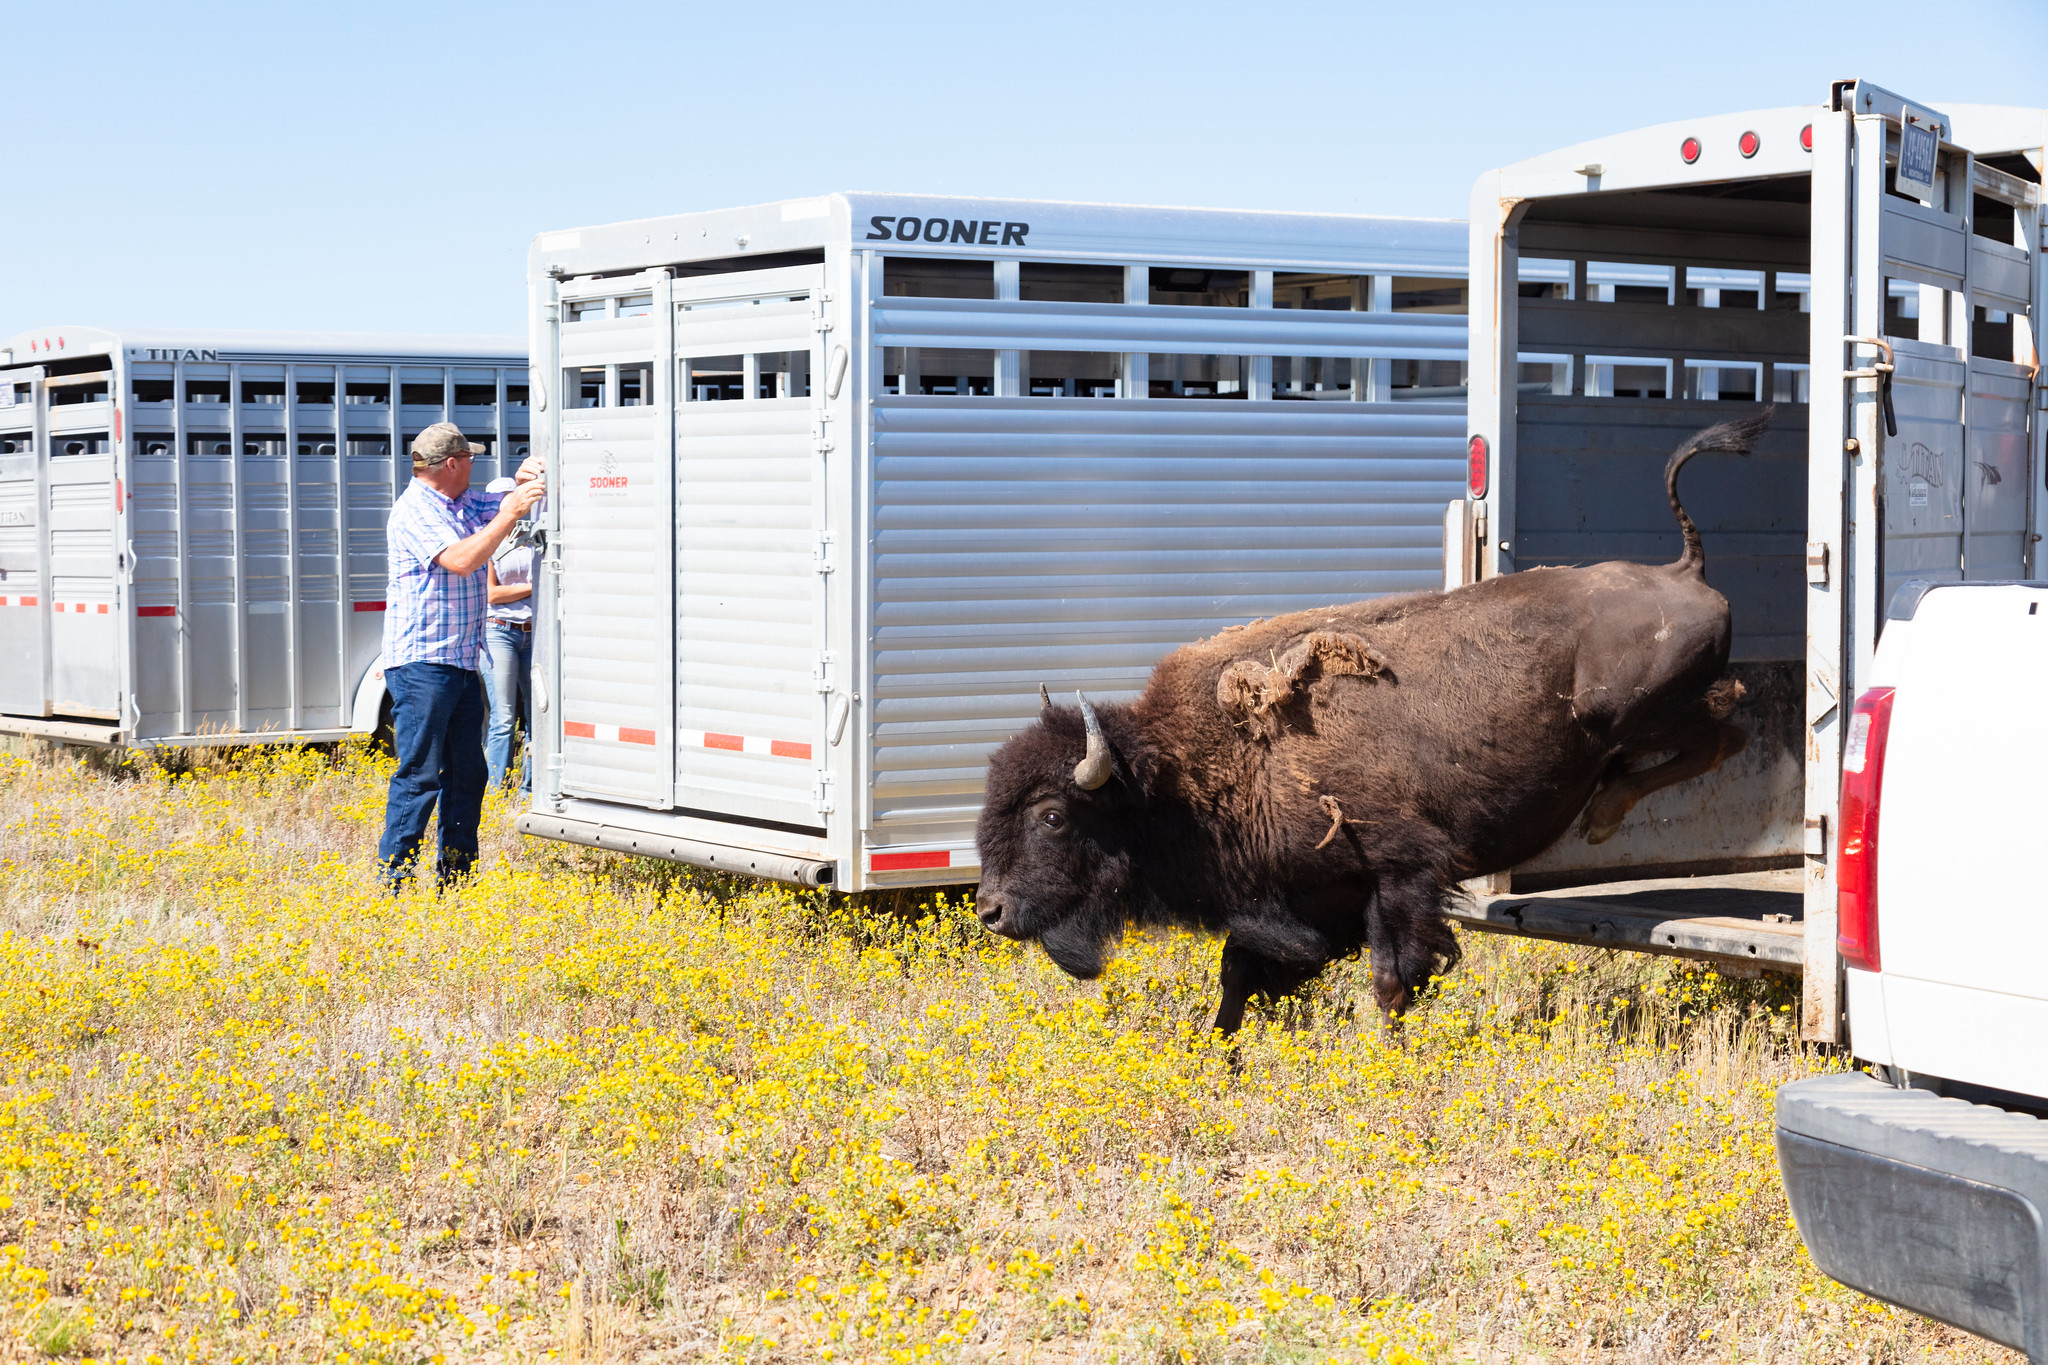 Bison jumping out of trailer onto the grass